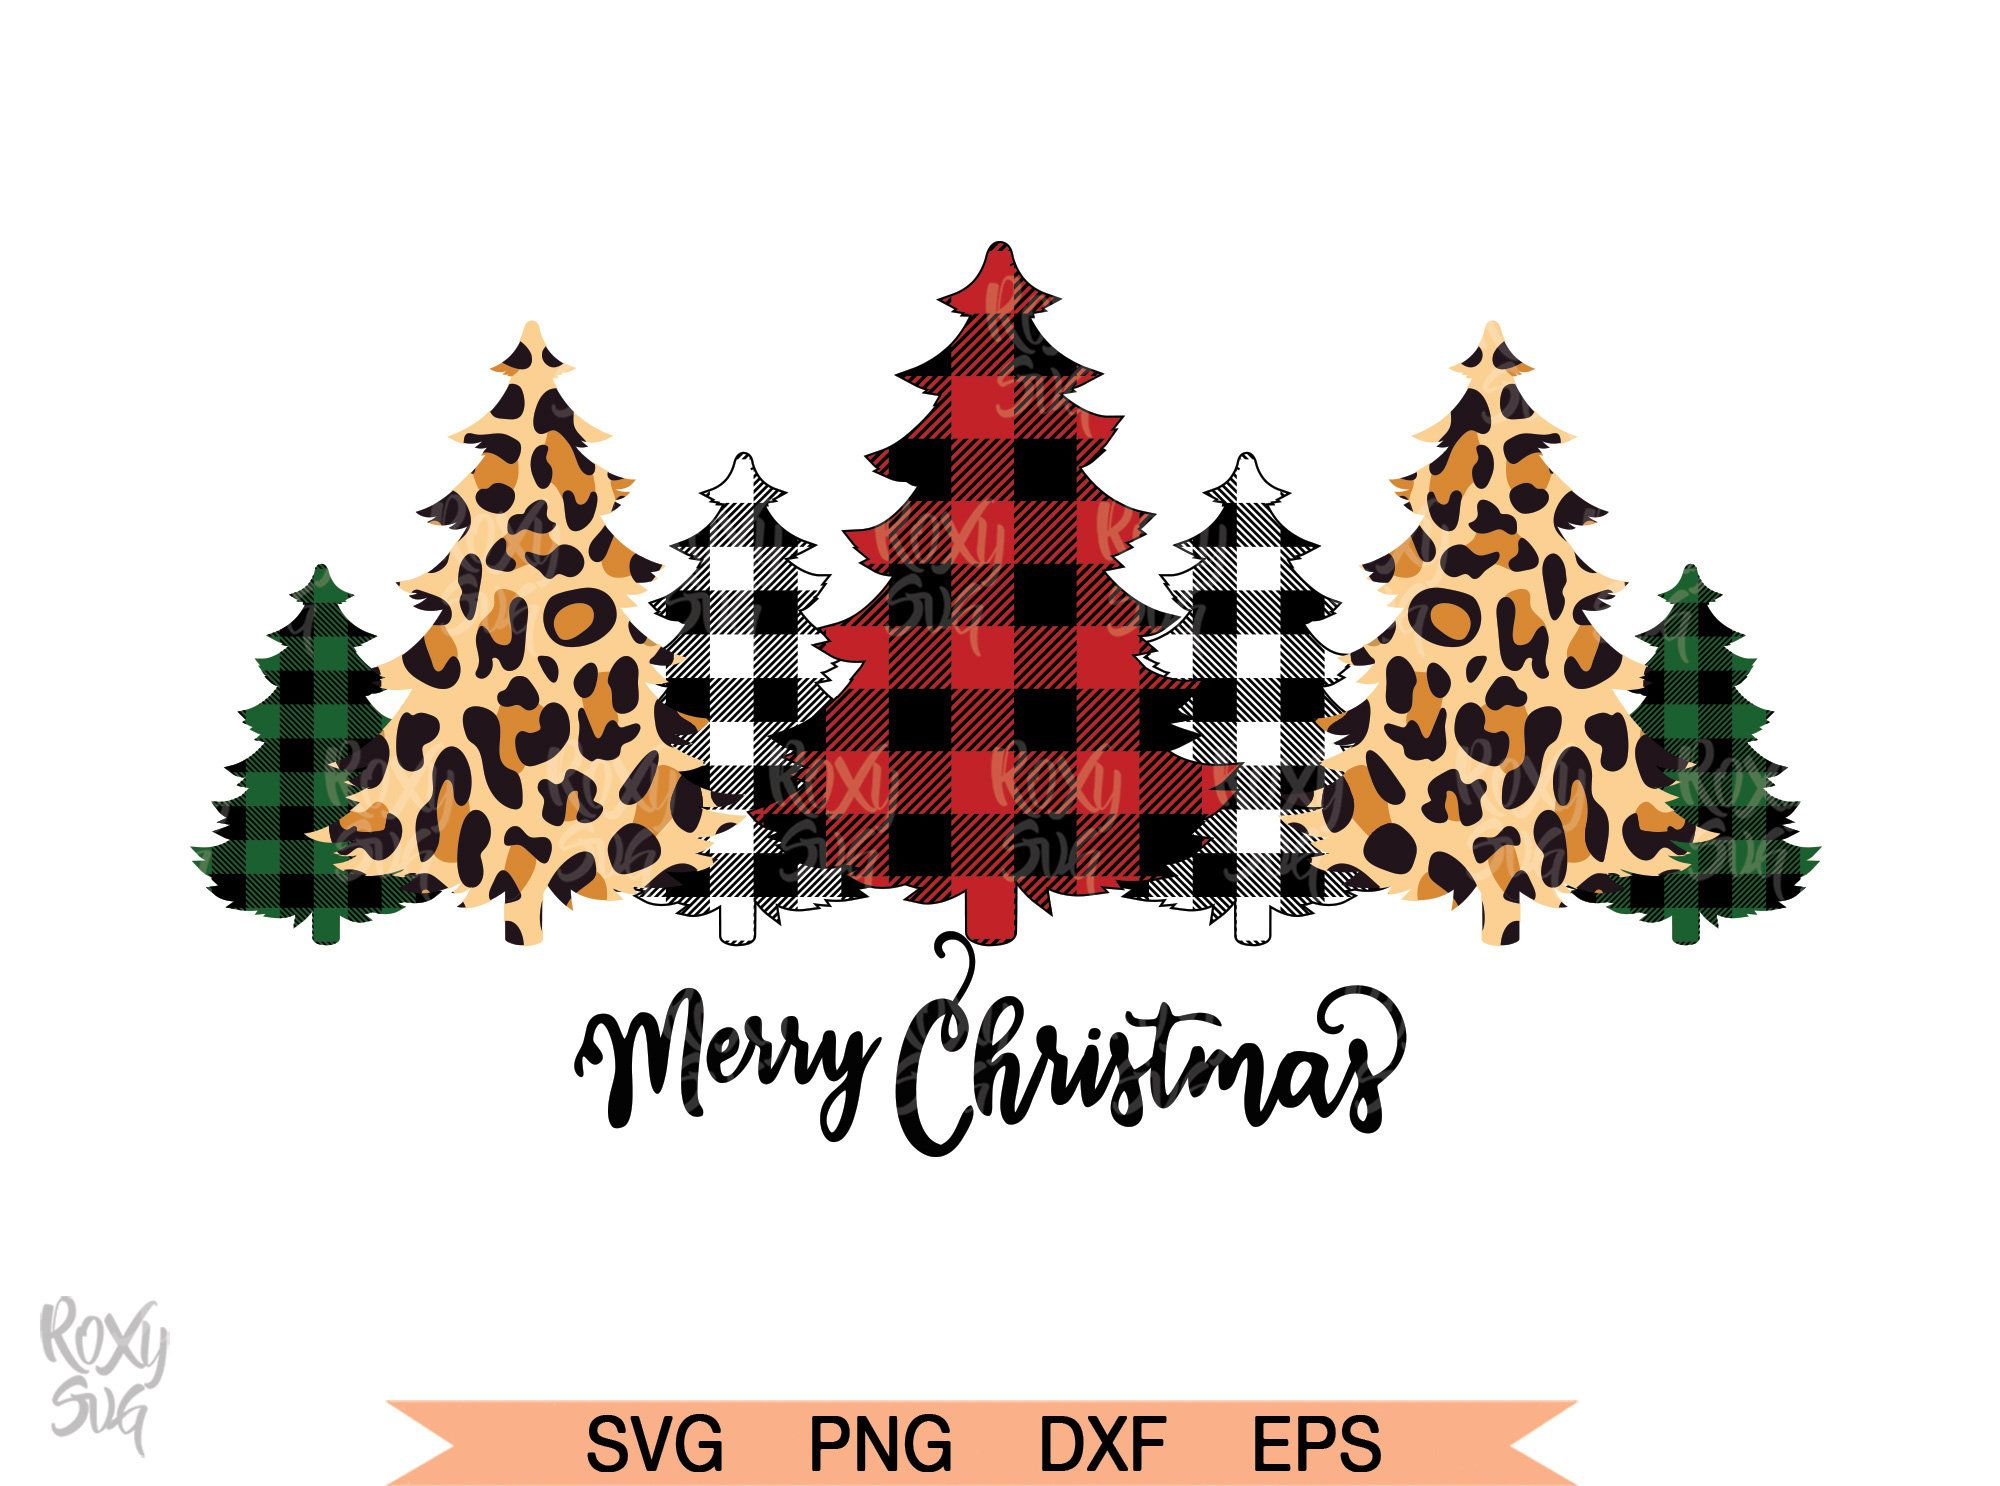 Buffalo Plaid Trees Svg Christmas Tree Svg Christmas Svg Etsy In 2020 Christmas Tree Clipart Christmas Svg Christmas Svg Files